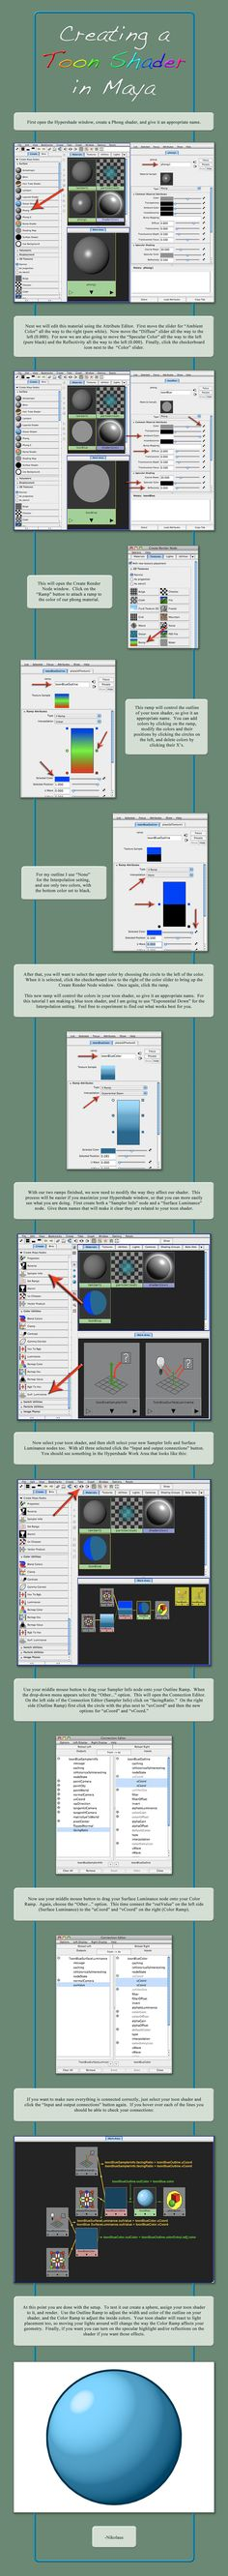 Maya Toon Shading Tutorial by Shikijiyu.deviantart.com on @deviantART